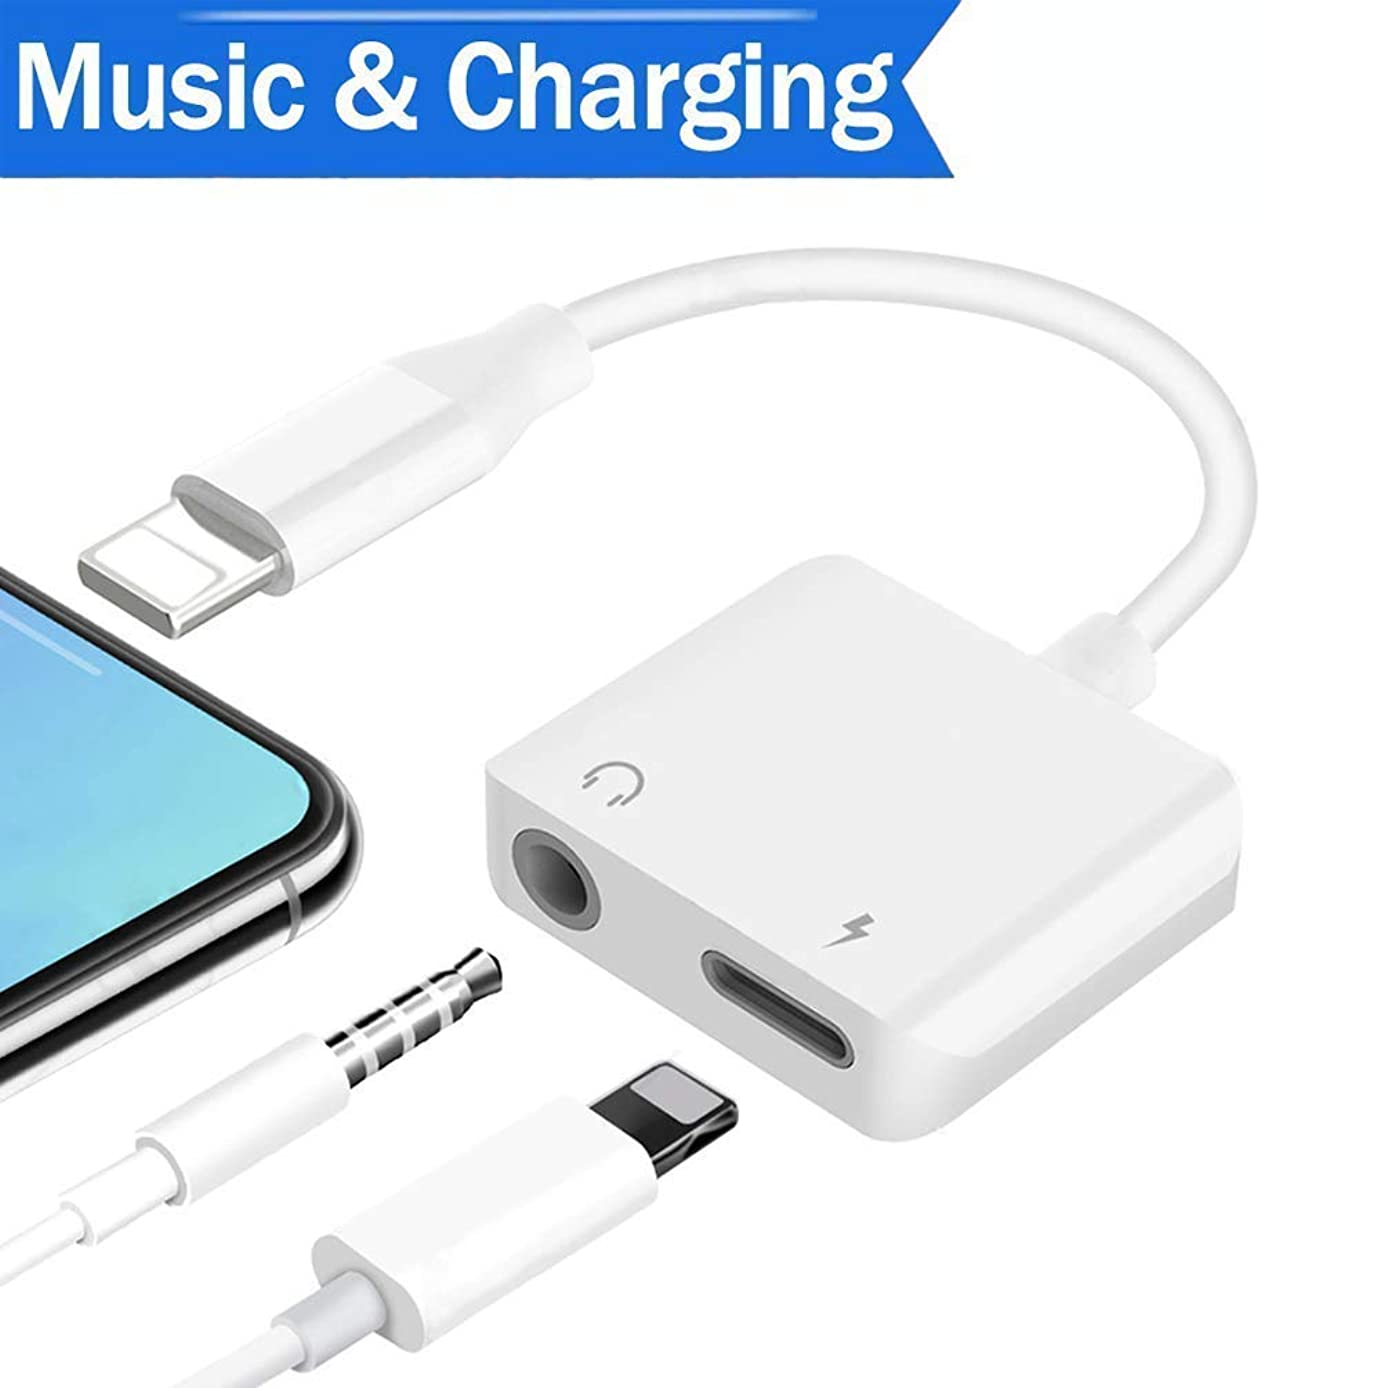 Headphone Jack Adapter Dongle for iPhone 8/8Plus/X (10) / 7/7 Plus/Xs/Xs Max/XR/Adaptor to 3.5mm Splitter Converter Compatible with Listen to Music Adapter Audio and Charger Cable Support iOS 12